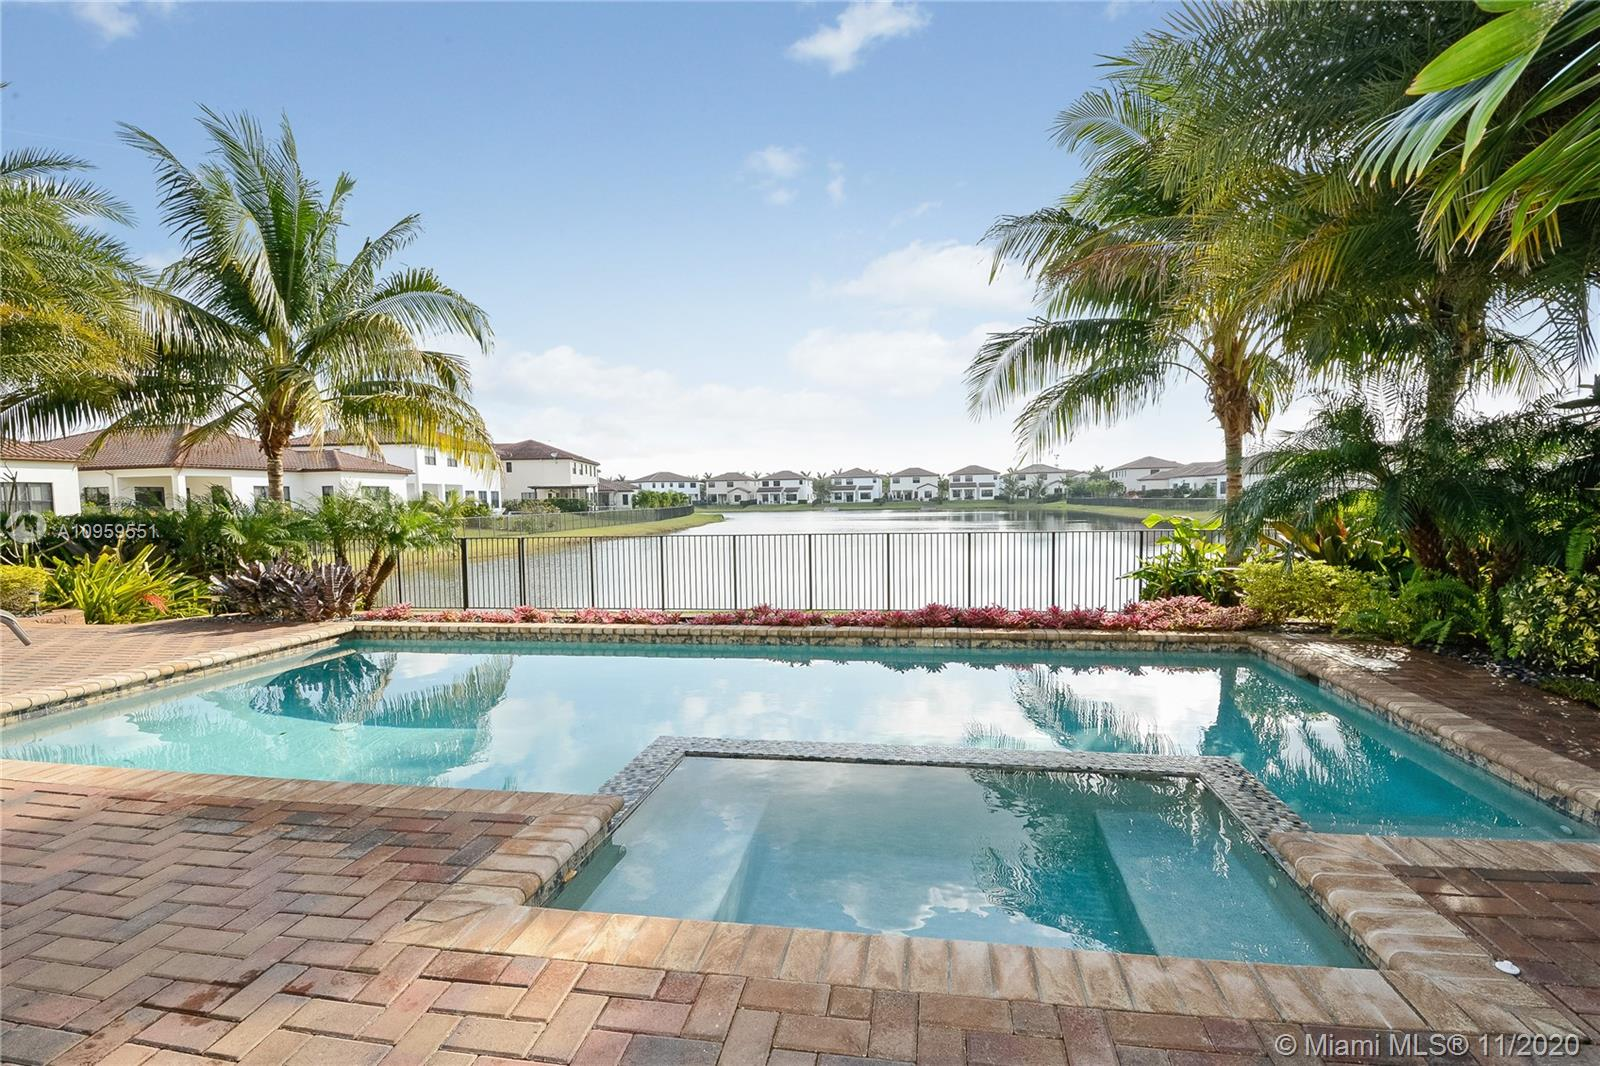 Rare opportunity in cooper City's most sought after community of Monterra. The Cambria Model is an Estate Home situated on a prime waterfront lot encompassing a gorgeous pool & tropical landscaping. The 5 bedroom home offers the owner's suite on ground level & 4 bedrooms plus loft on second level along with 3.5 baths. The  open floor-plan is highlighted by cabana bath, crown molding, mud room, custom closets ,hurricane impact windows and porcelain/wood flooring. The 3 car garage offers epoxy high shine polished concrete. Monterra is a 24/7 man gated community offering a state of the art clubhouse. You will enjoy a complete workout, pool, tennis, basketball, dog park, tot lot and A-plus rated schools. Located minutes from all major highways and FTL   airport. Price is firm!